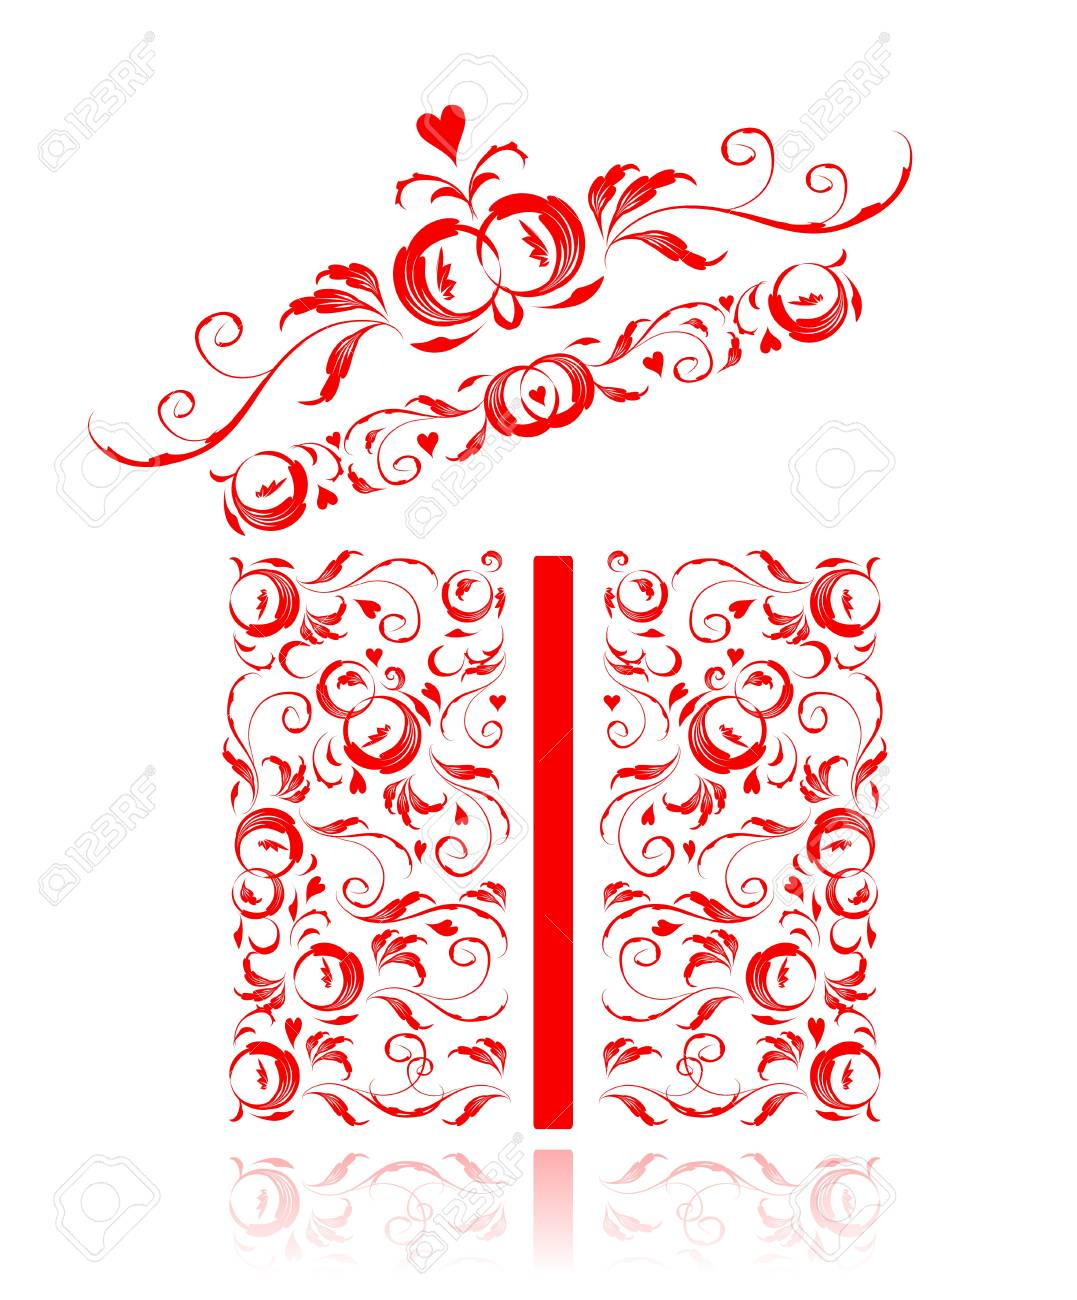 Opened gift box stylized, floral ornament design Stock Vector - 7715285